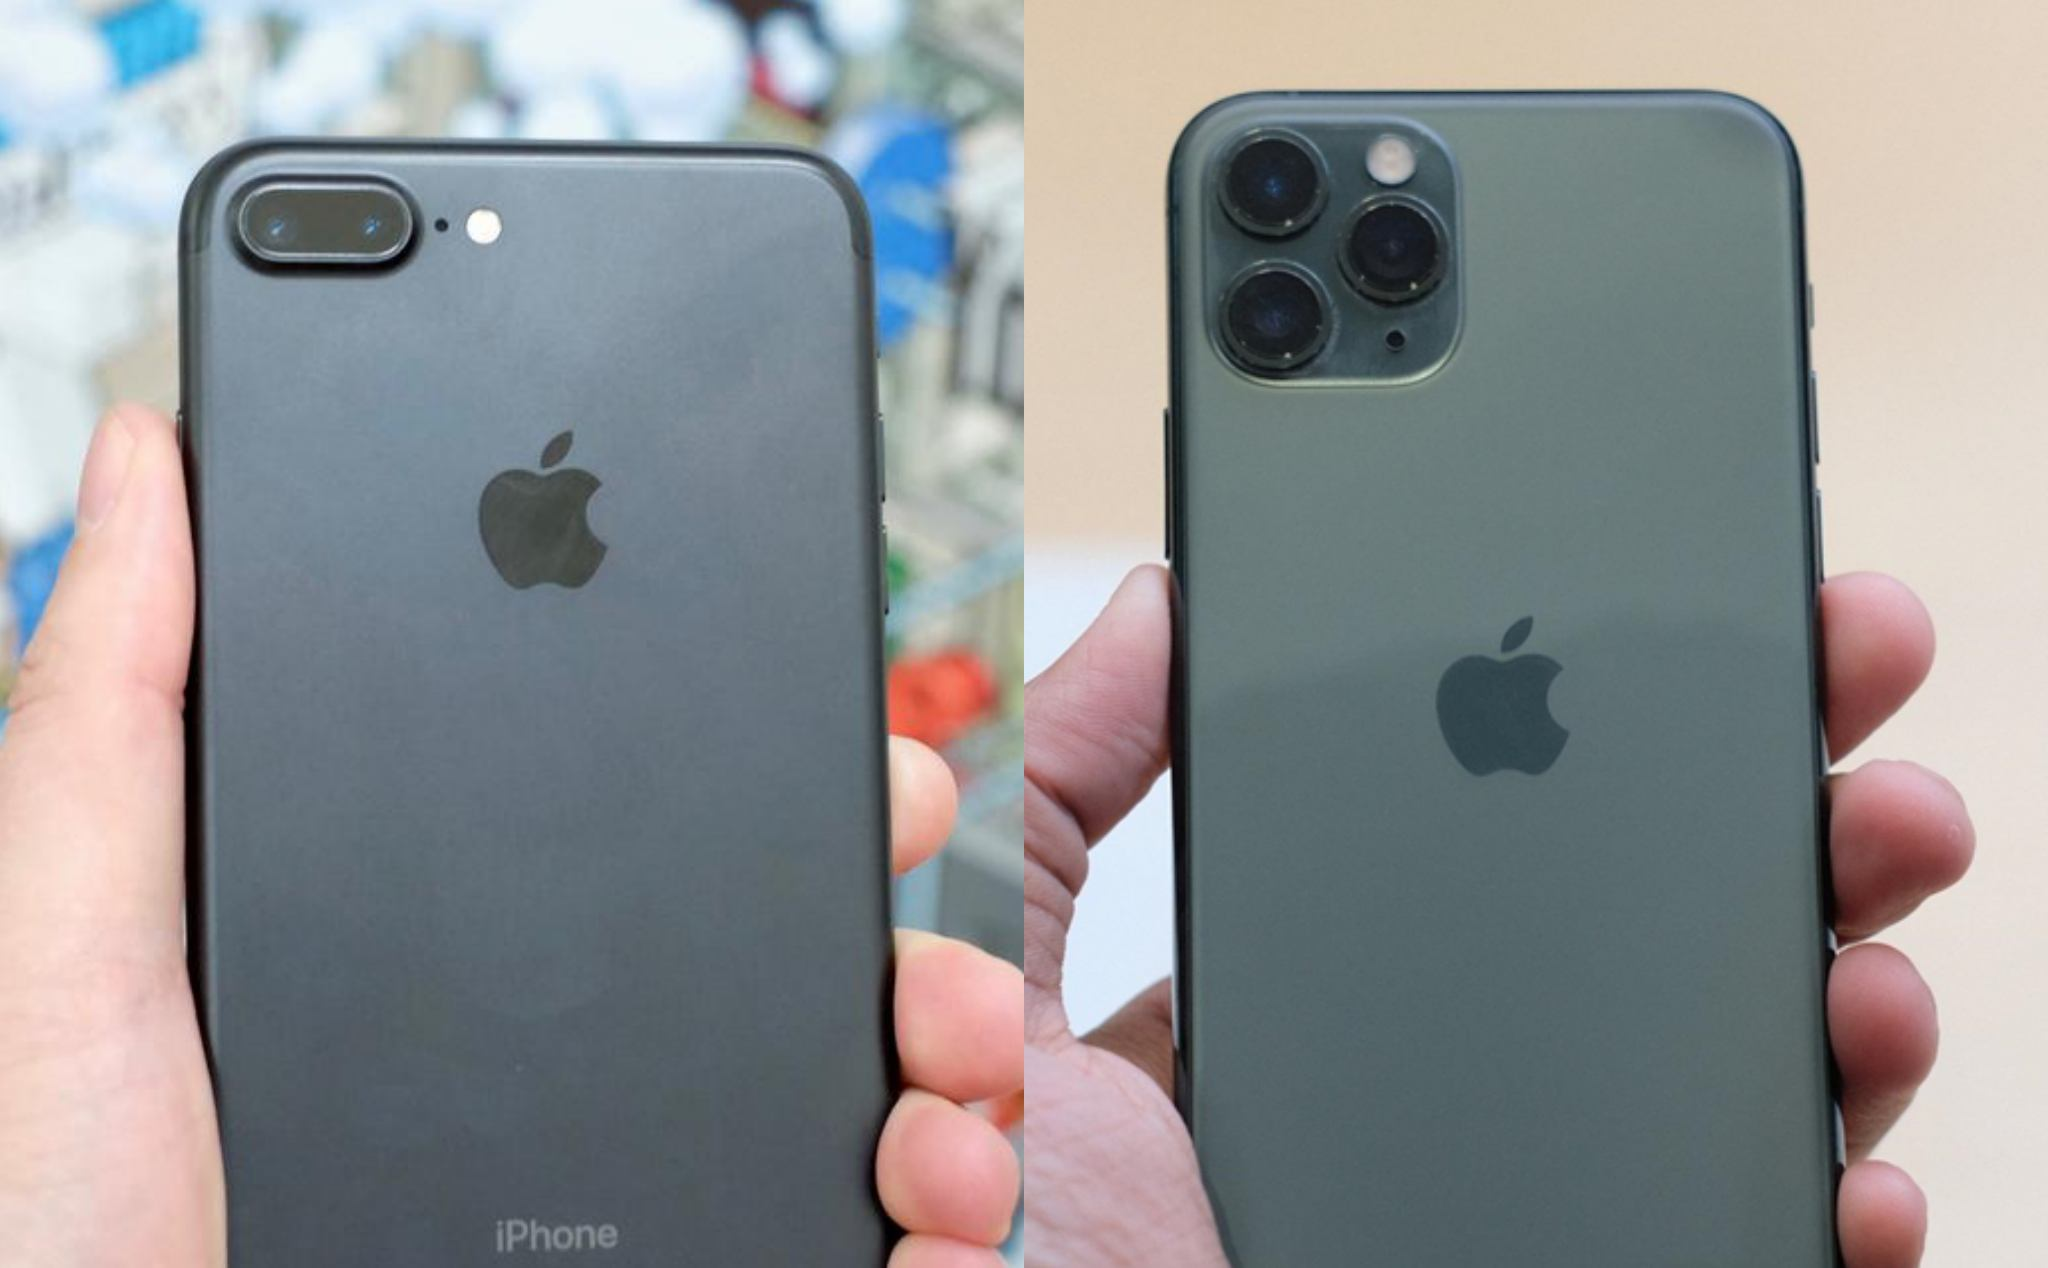 Are using iPhone 7 plus, want to upgrade to 11 Pro Max 256GB, should order now or early next year to buy